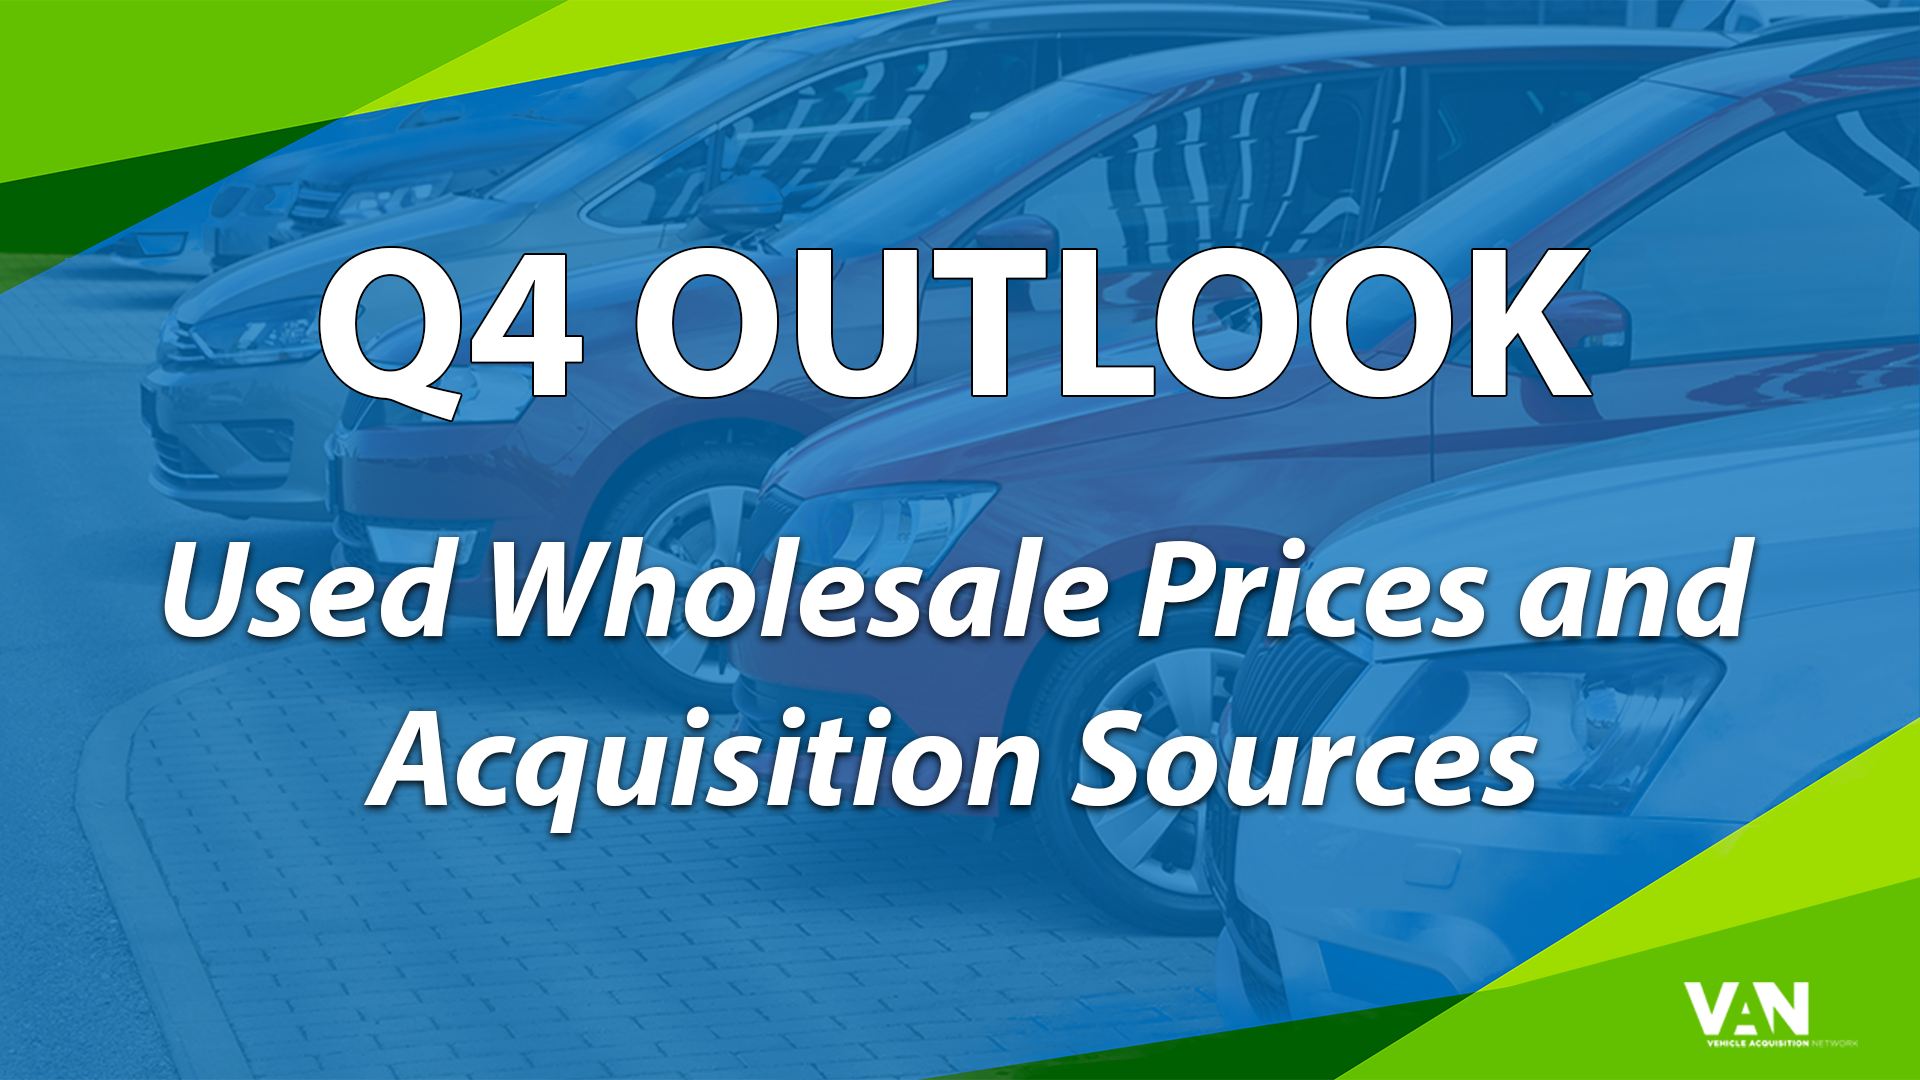 Q4 Outlook: Wholesale Prices and Acquisition Sources